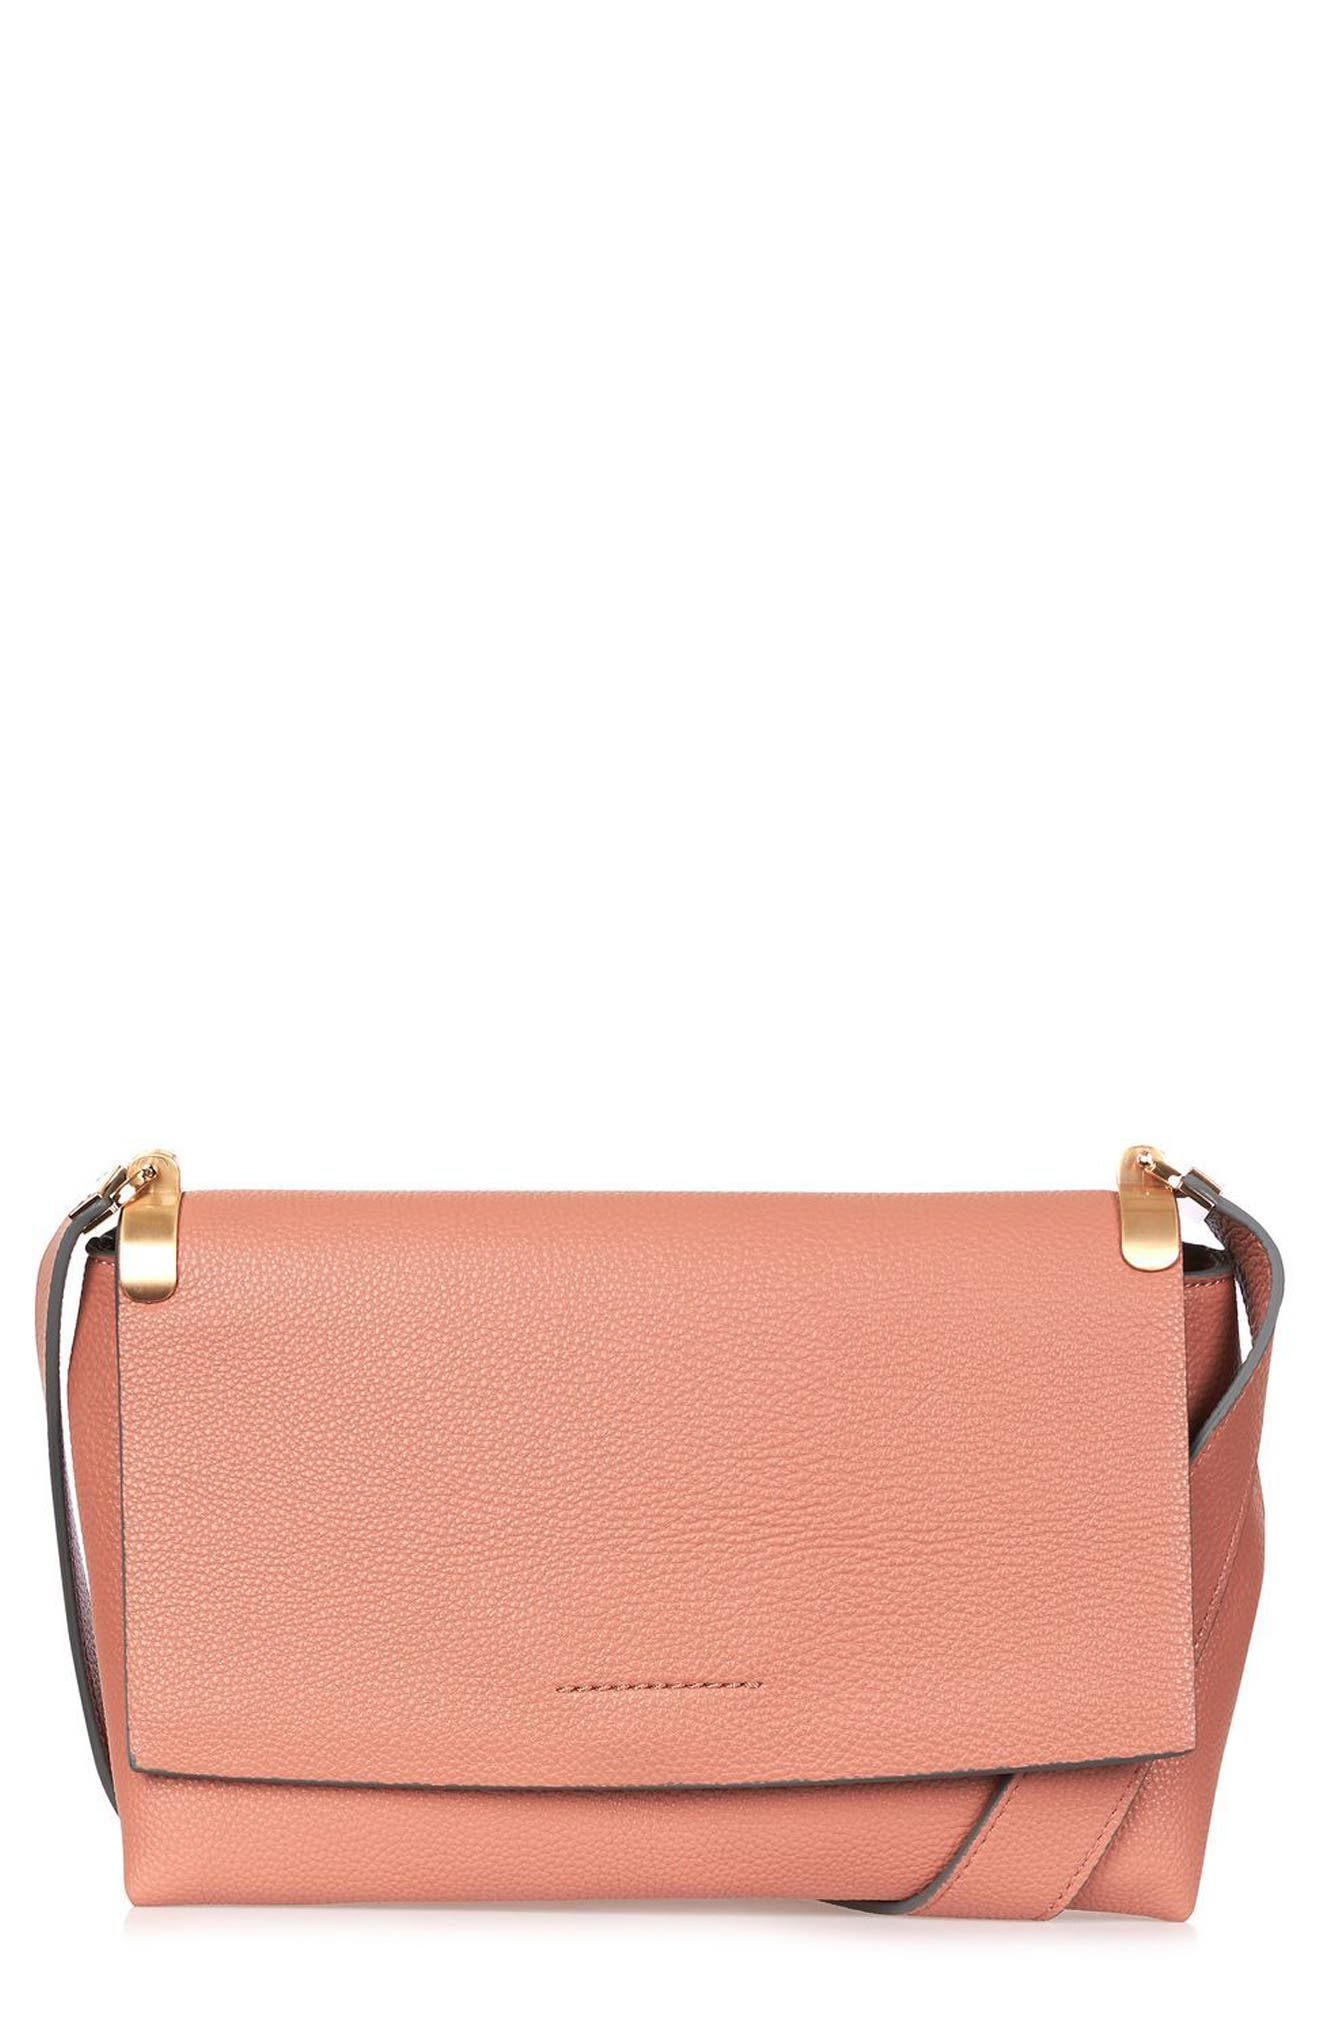 Olney Faux Leather Crossbody,                         Main,                         color, Pink